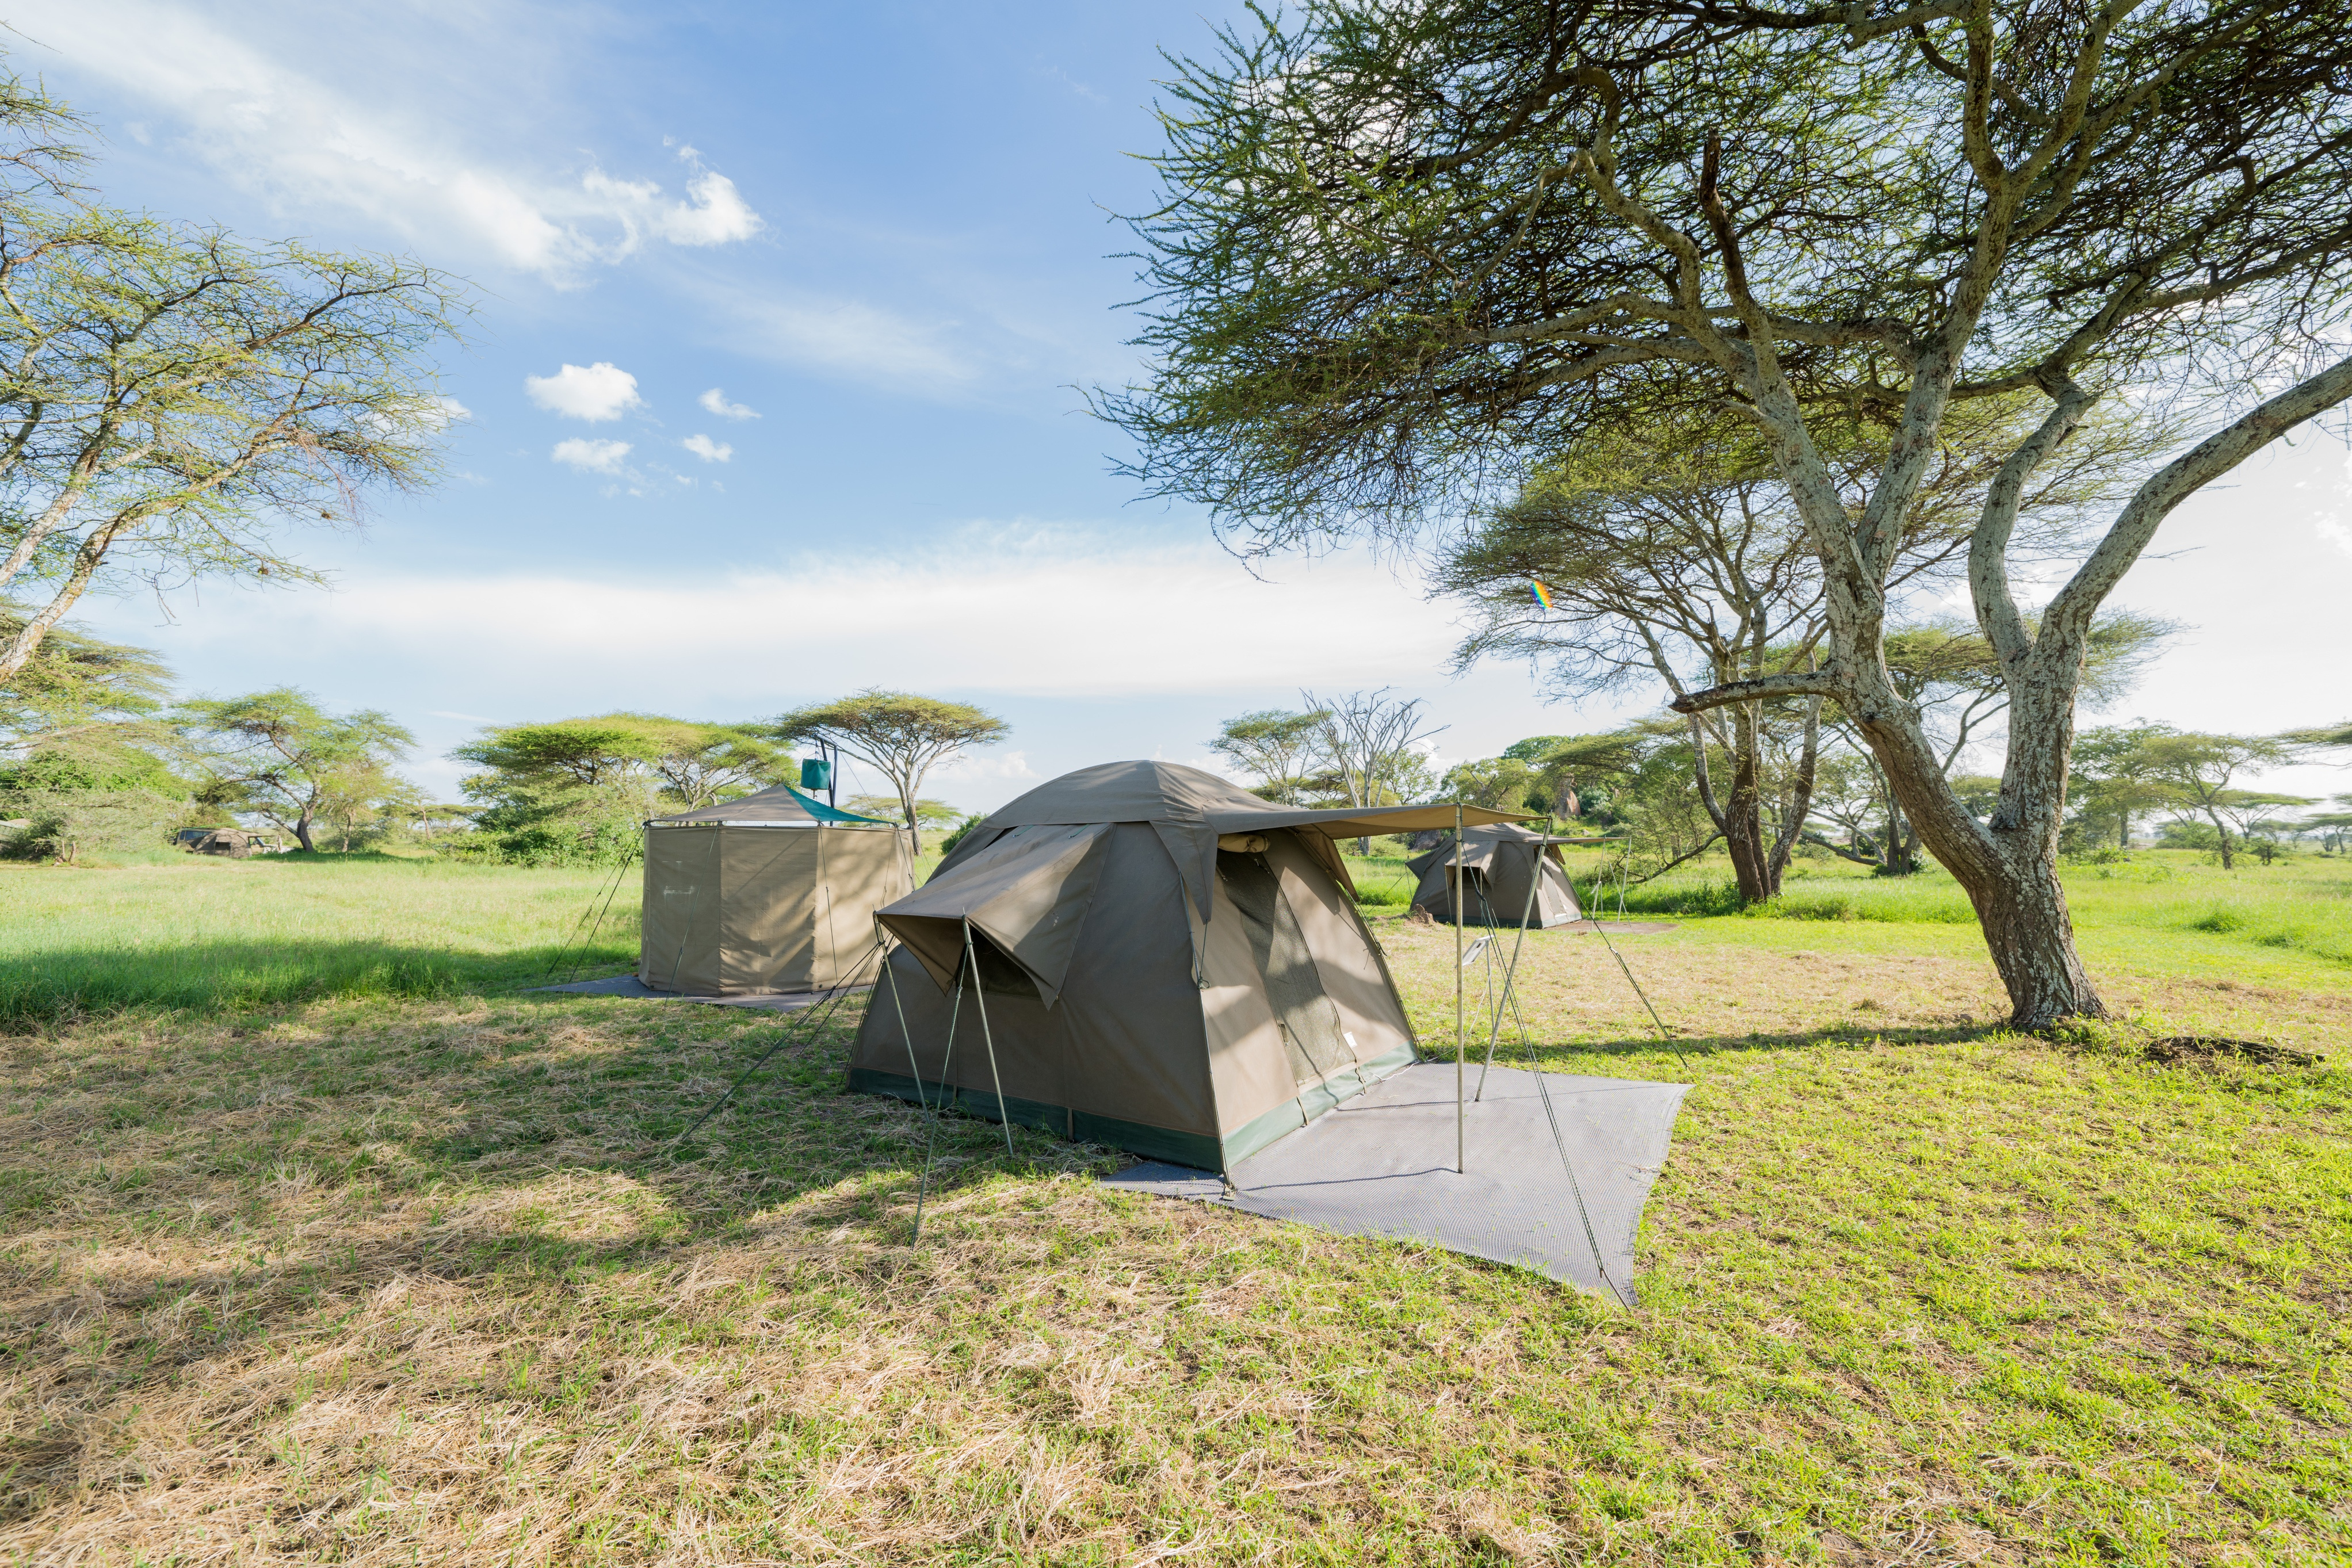 WAYO-Walking-Safari-Camp-tents.jpg#asset:116597